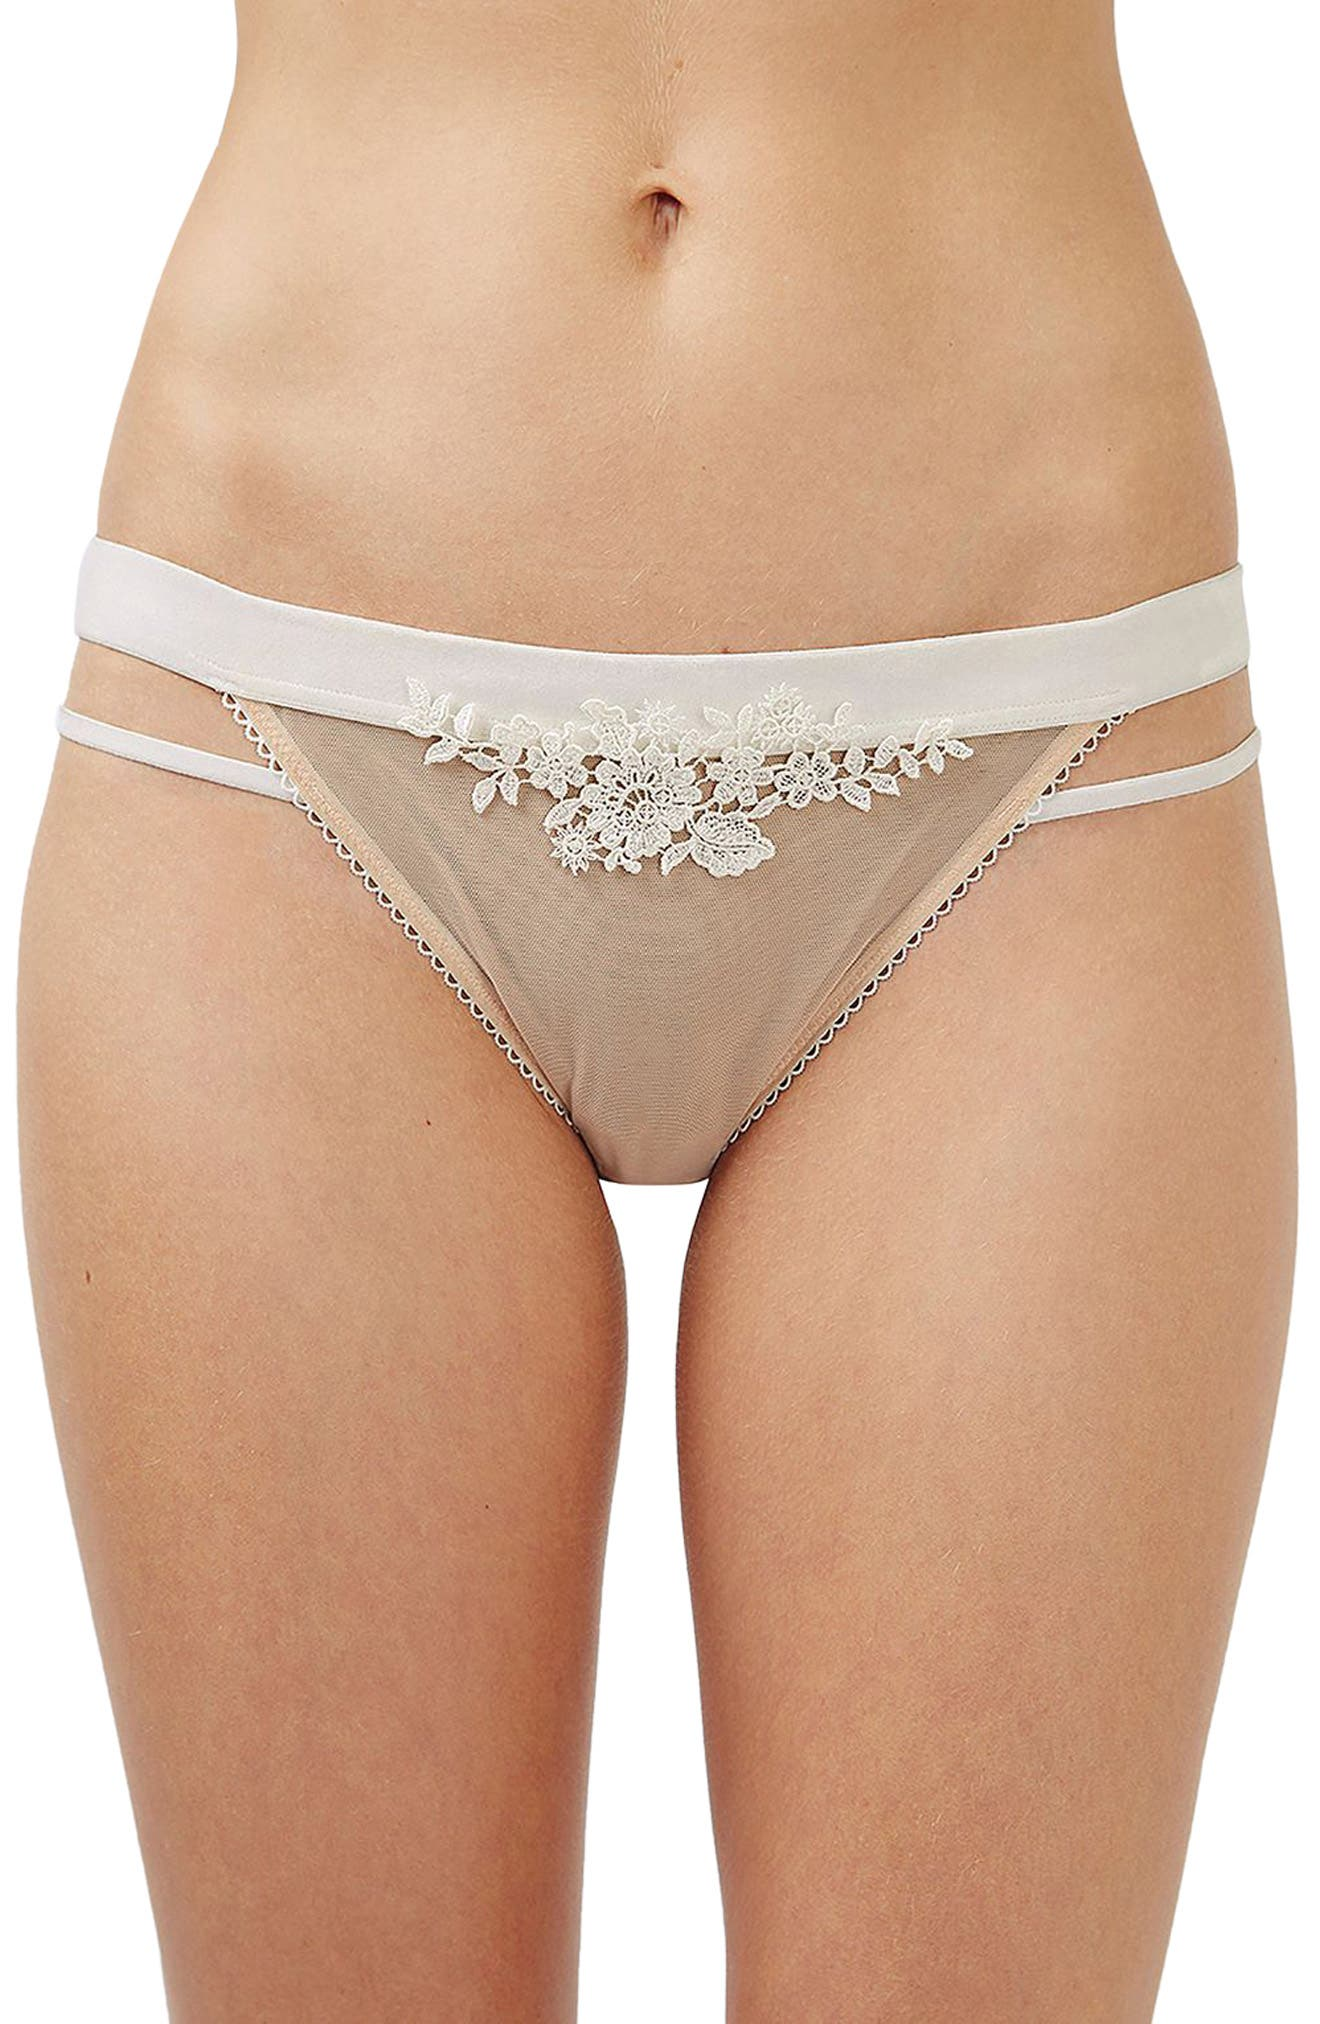 Topshop Bride Lolita Sheer Panties